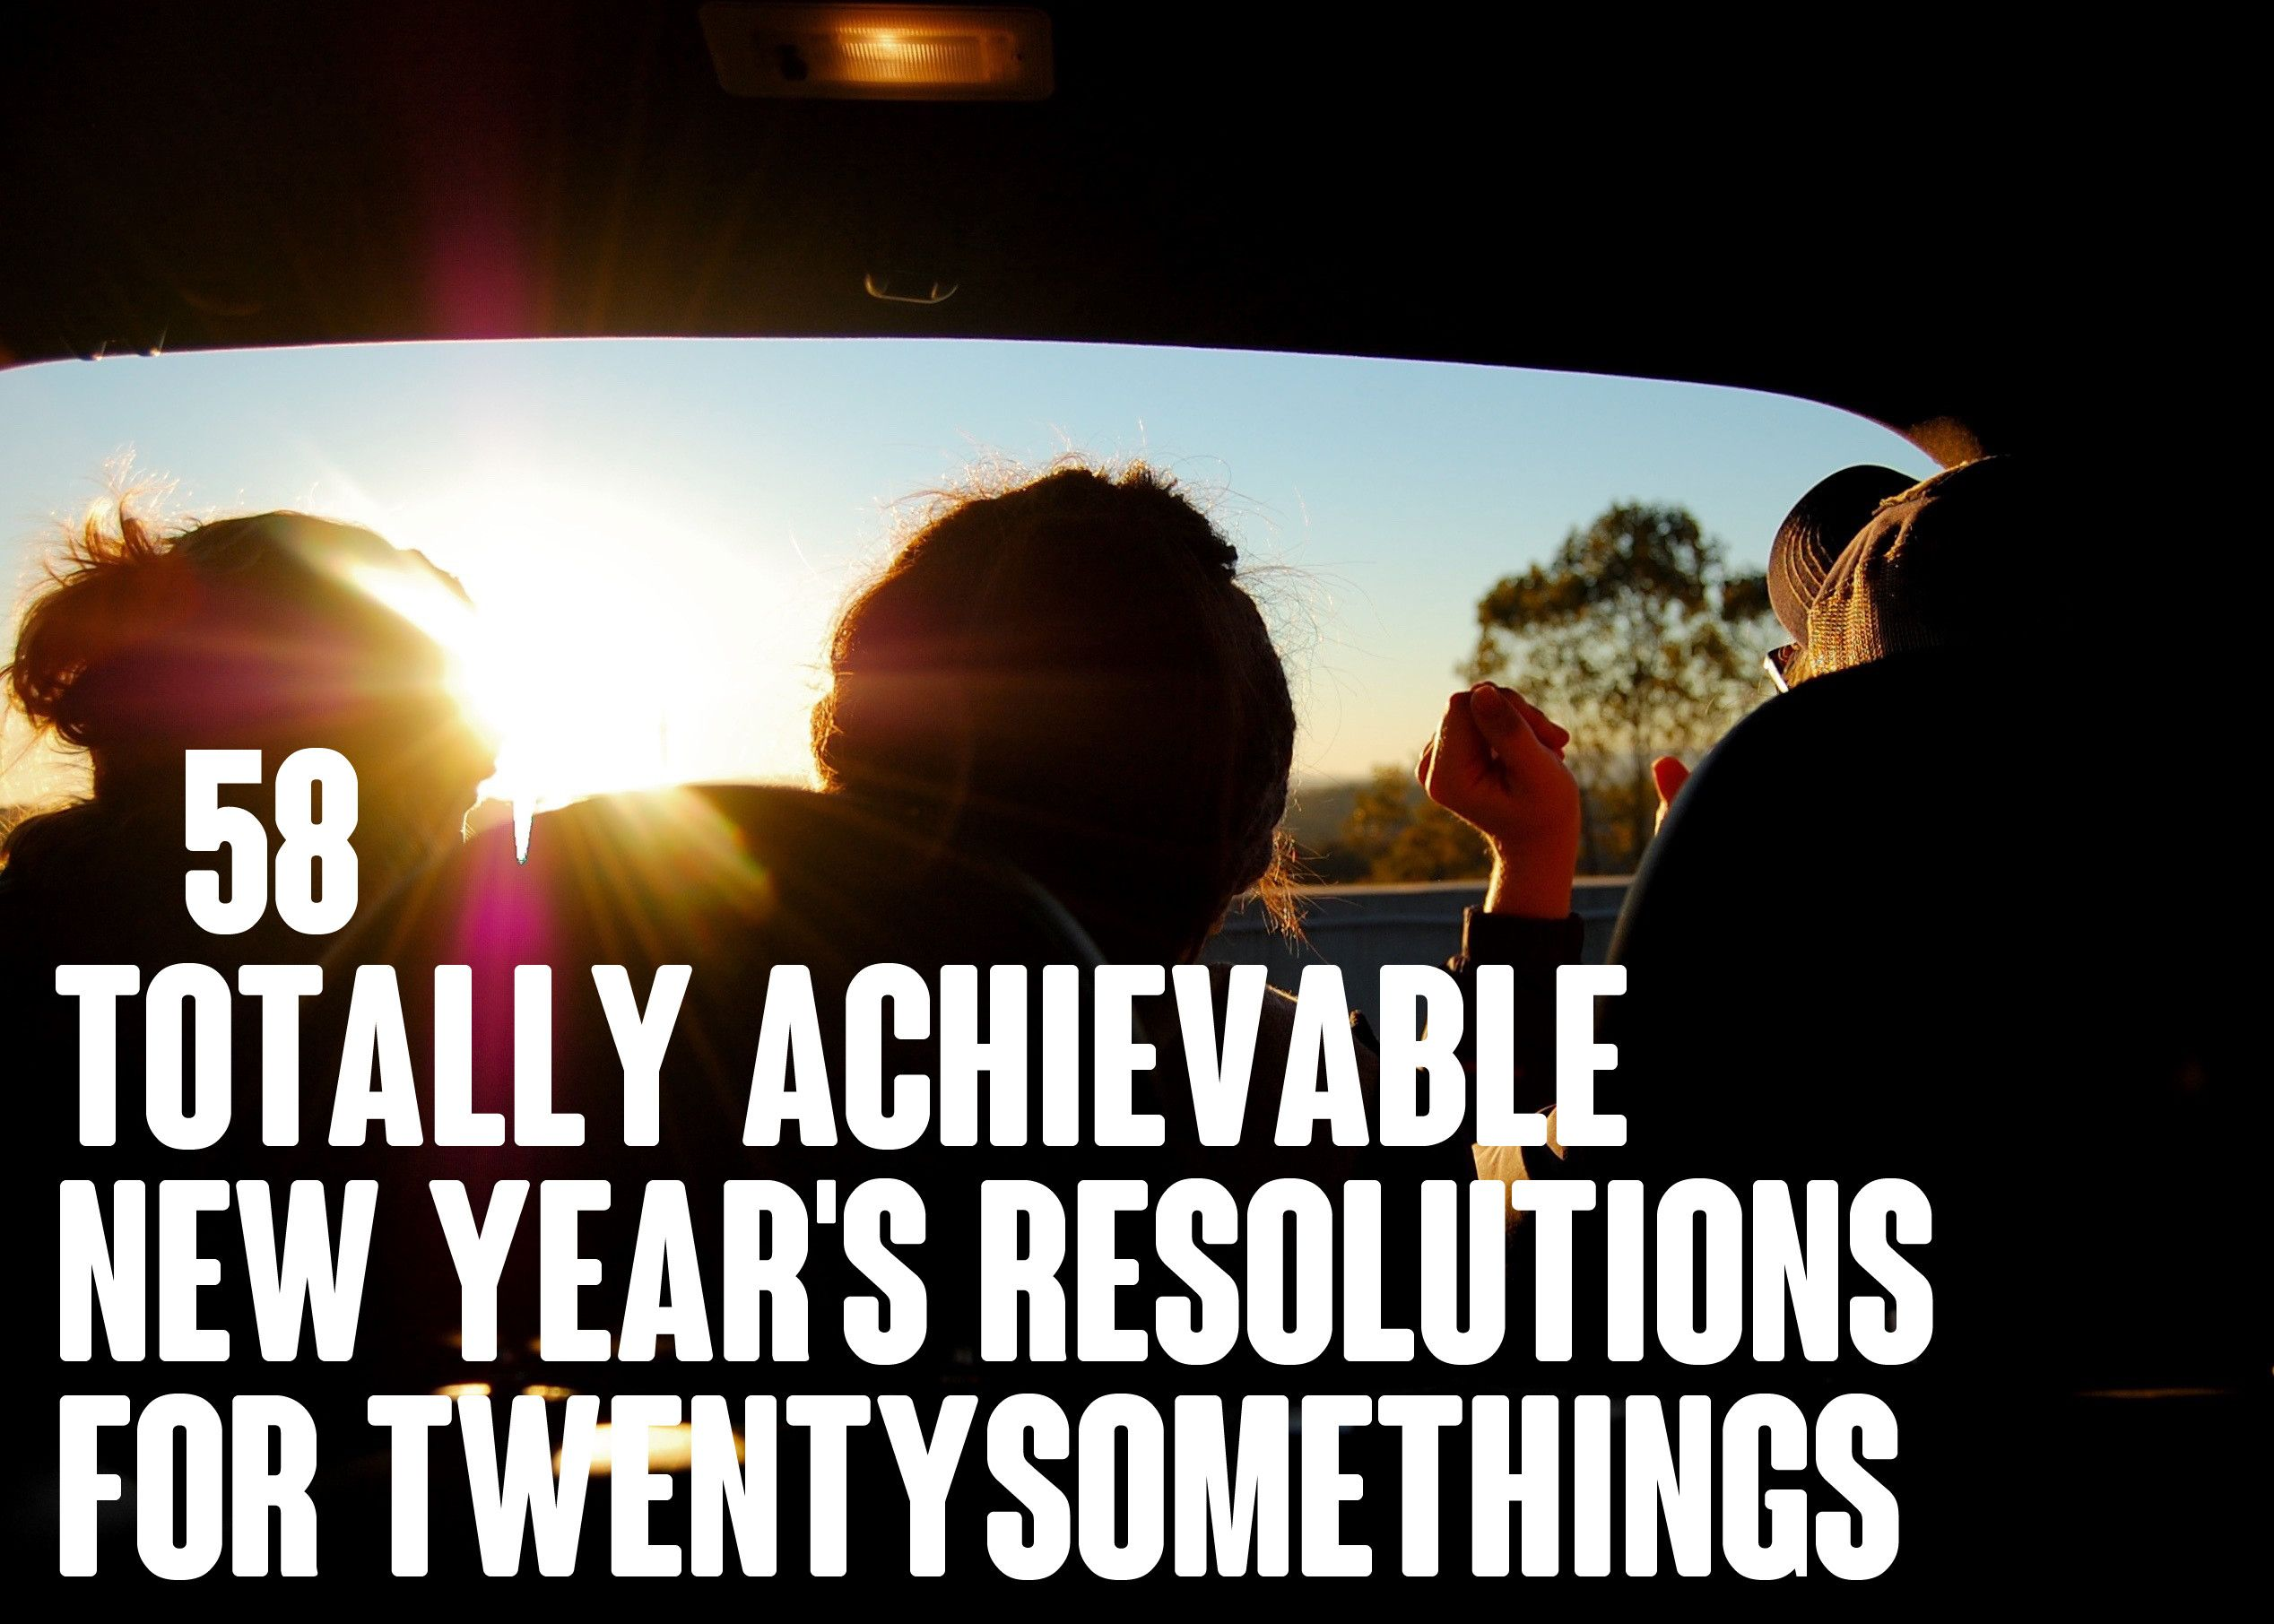 58 Totally Achievable New Year's Resolutions For Twentysomethings